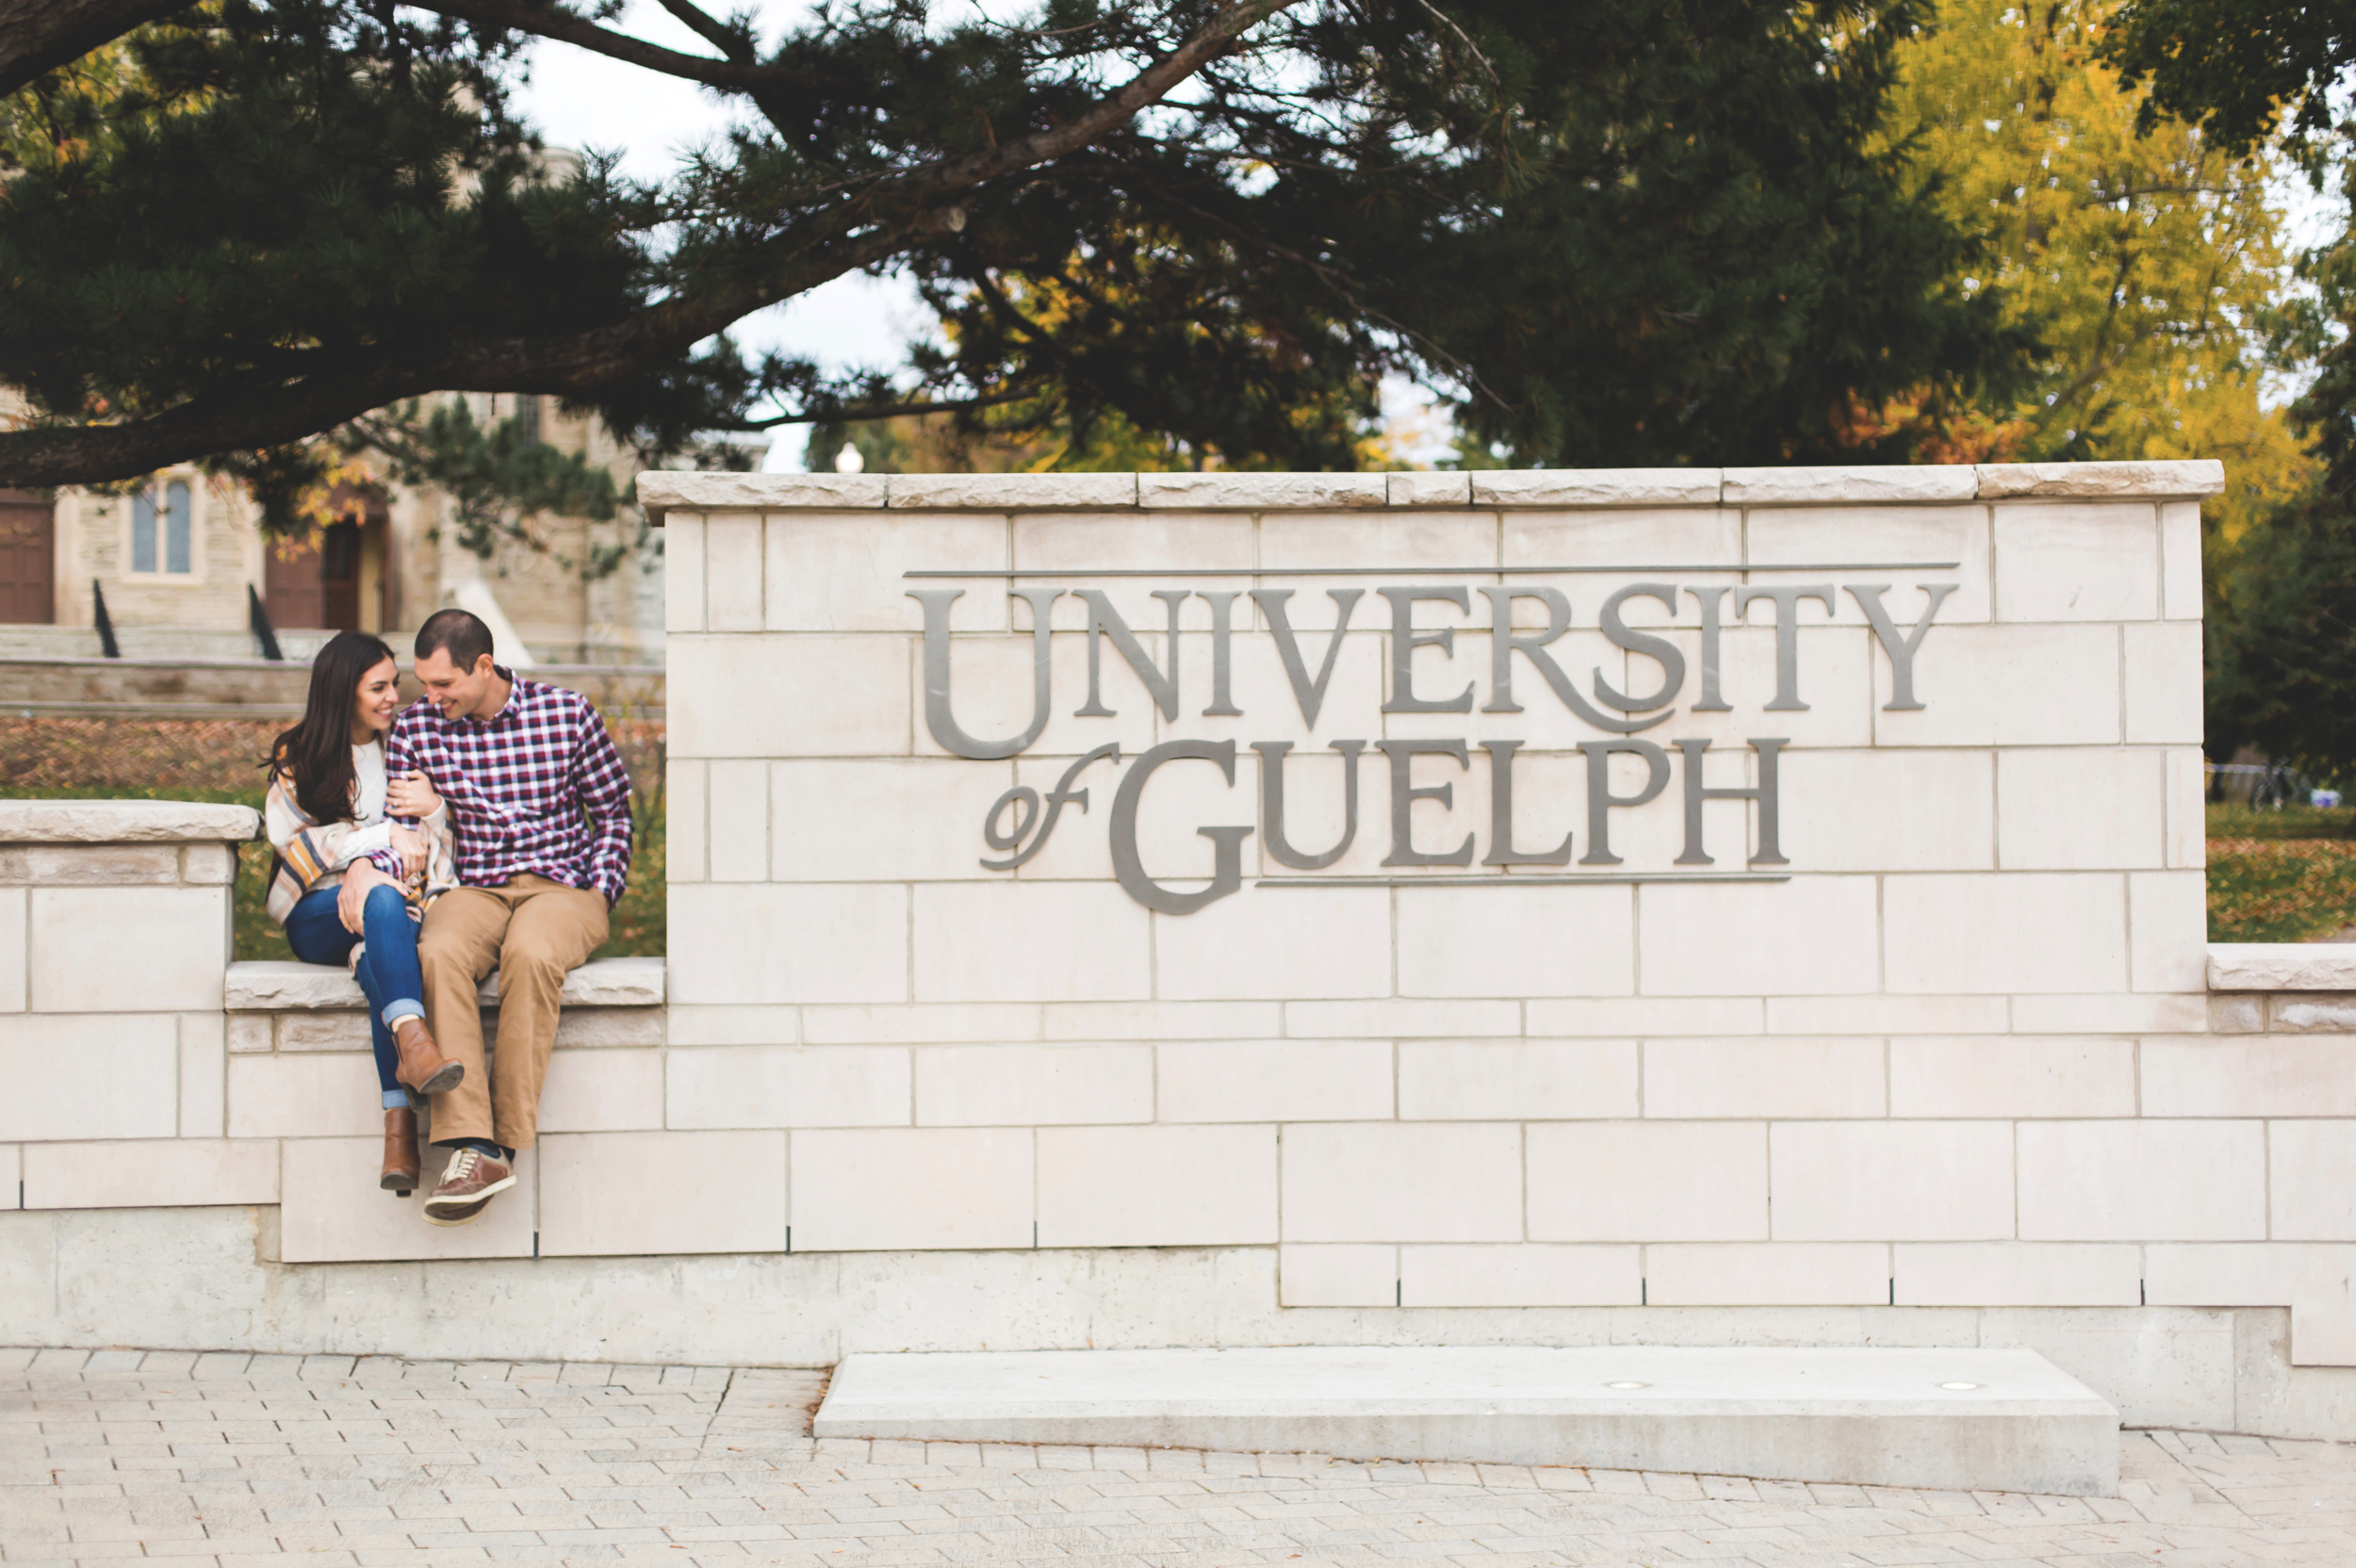 Engagement-Photography-Guelph-University-Campus-Hamilton-Burlington-Oakville-Niagara-Toronto-Wedding-Photographer-Photo-Image-14.png